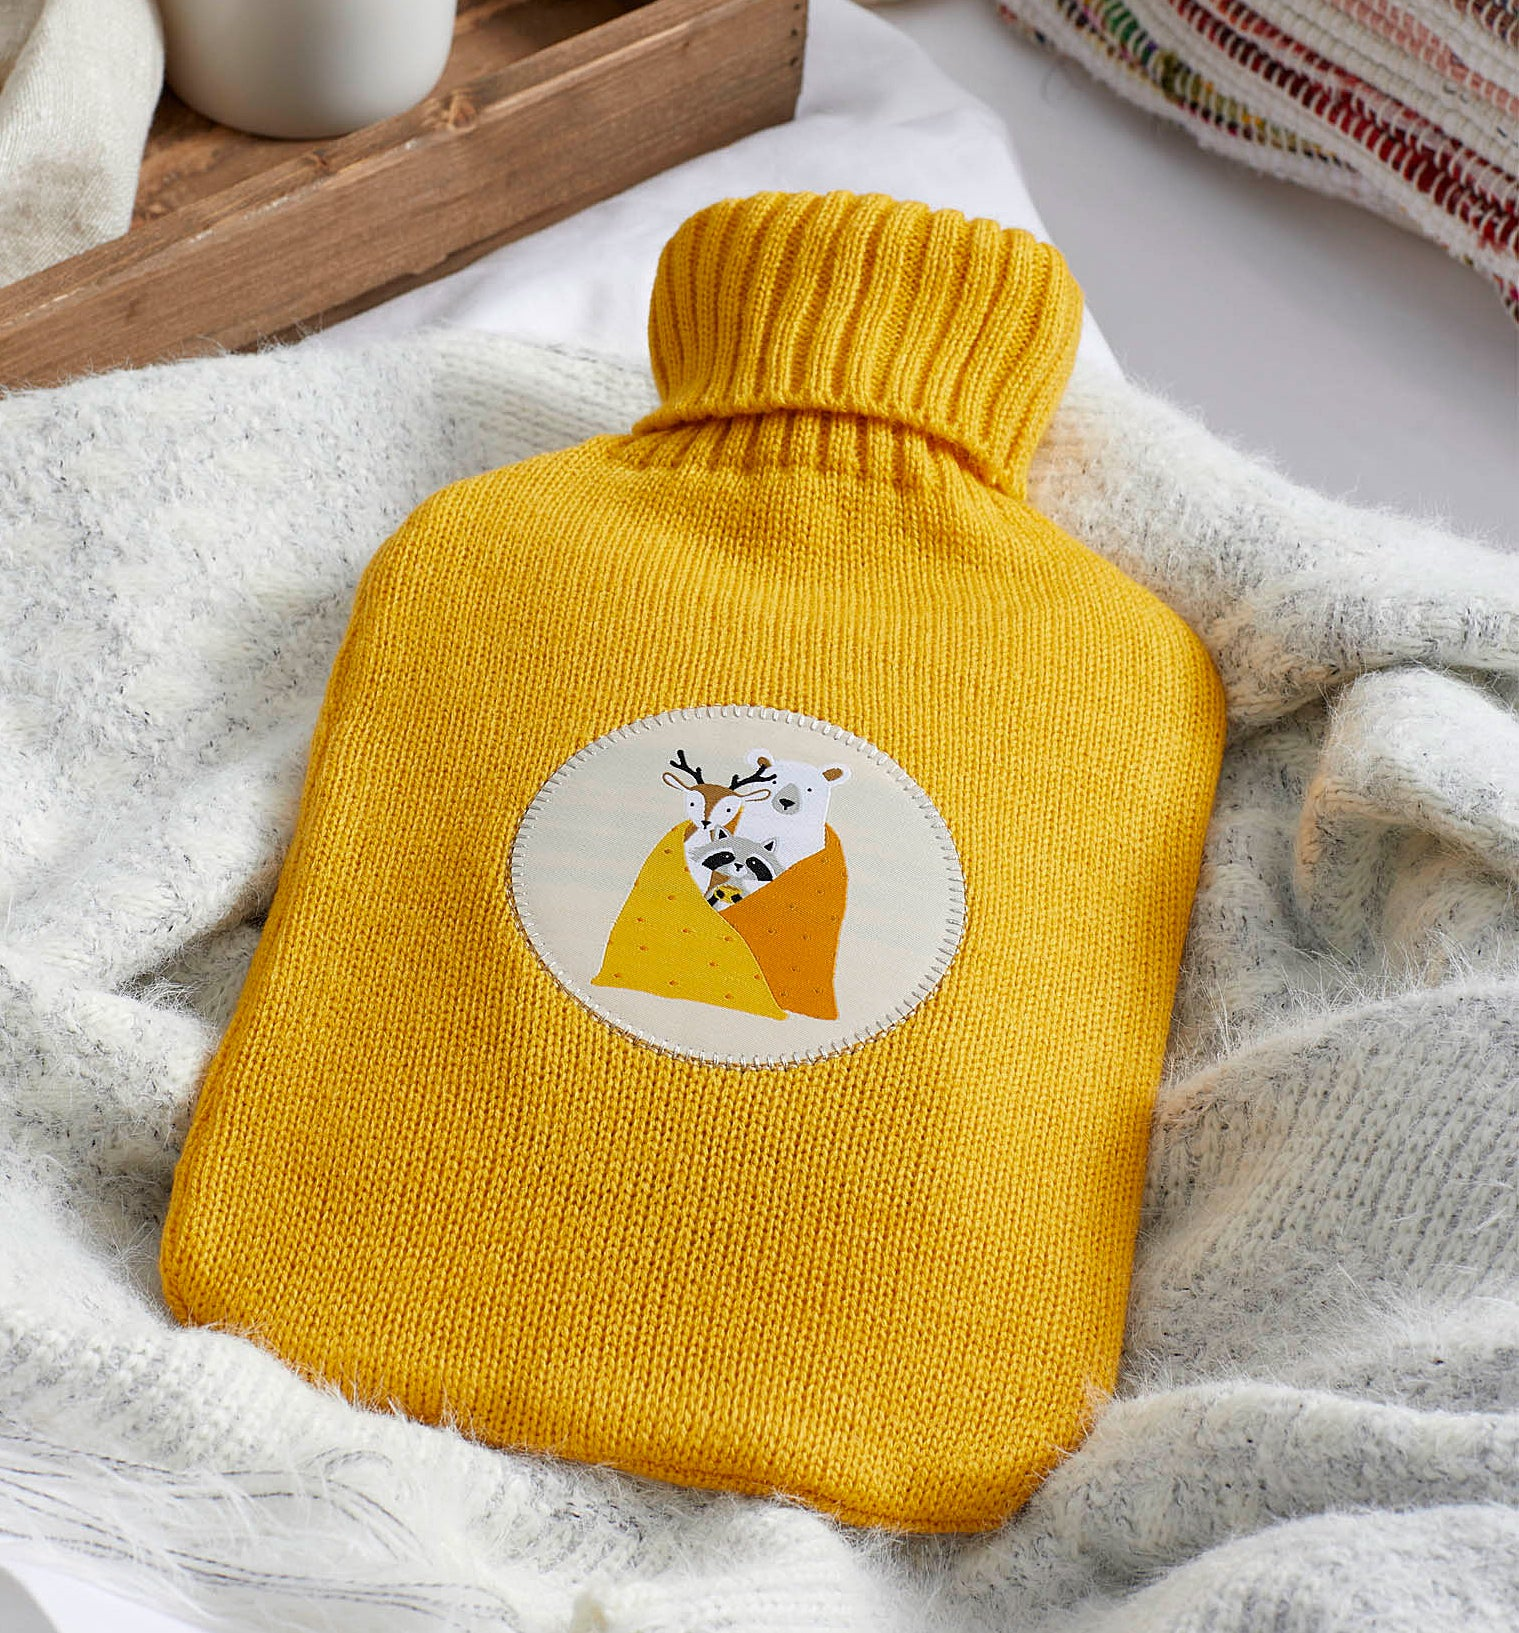 The hot water bottle on a blanket